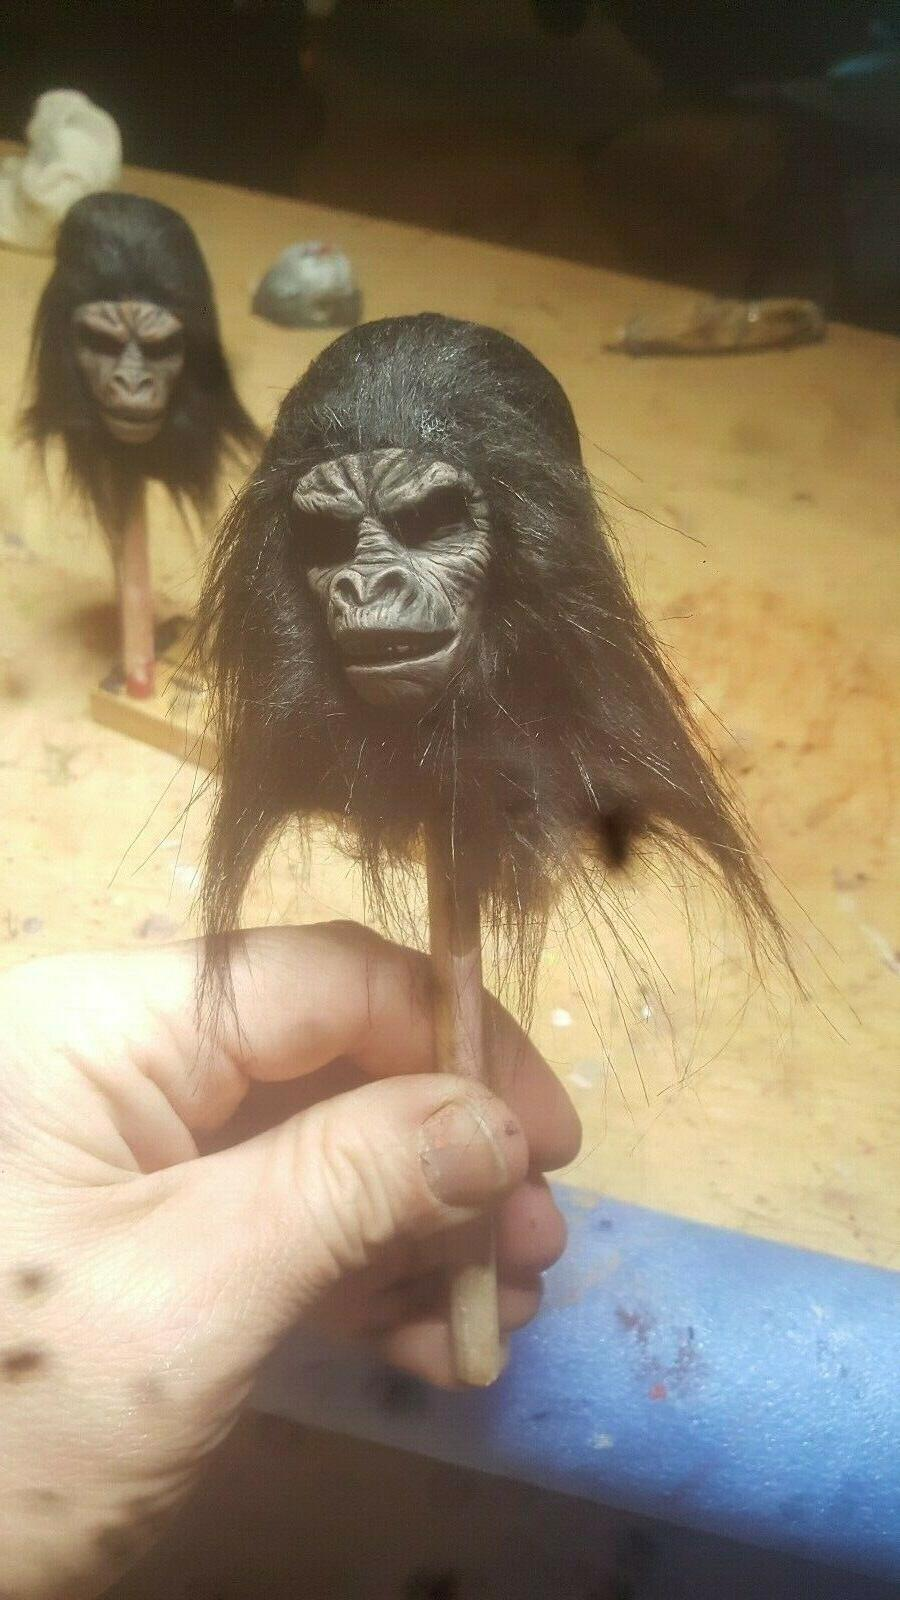 Planet of hot toys style ape soldier head 12 1/6